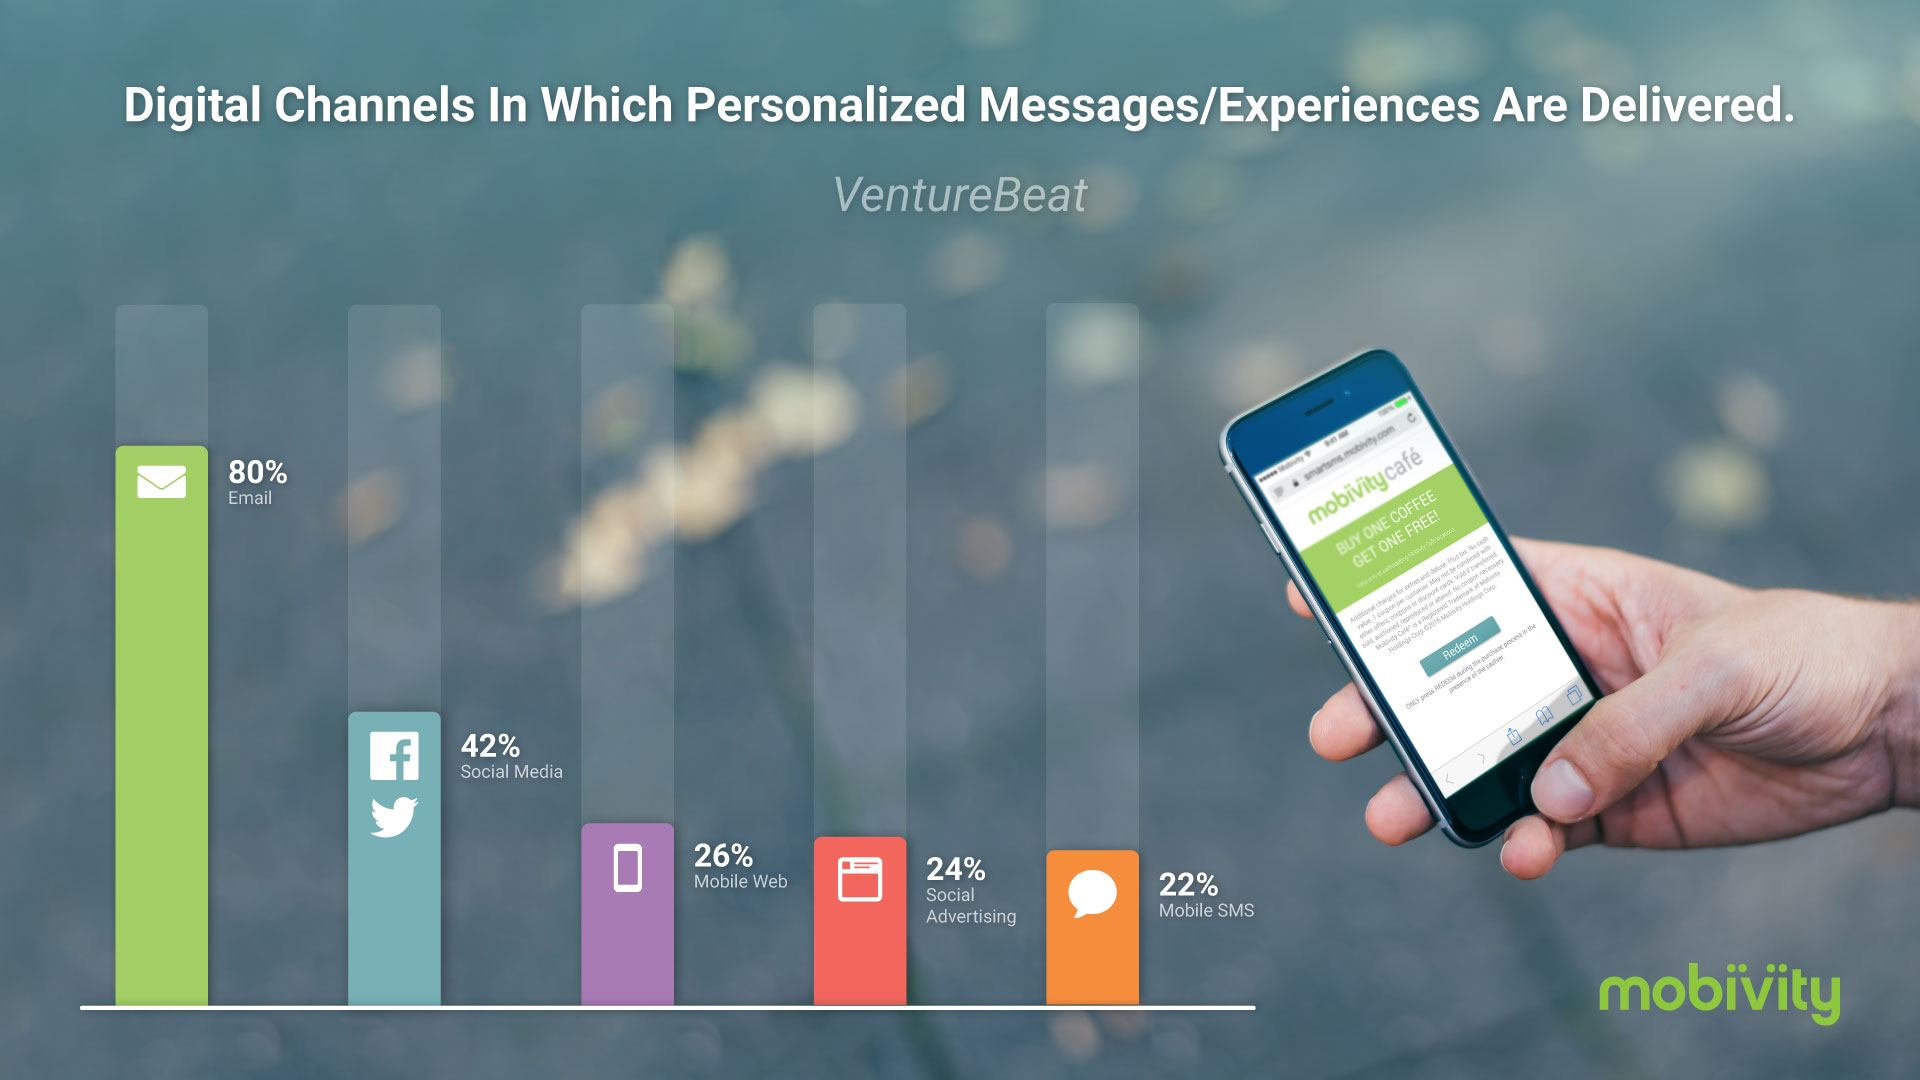 Digital Channels in Which Personalized Messages/Experiences Are Delivered